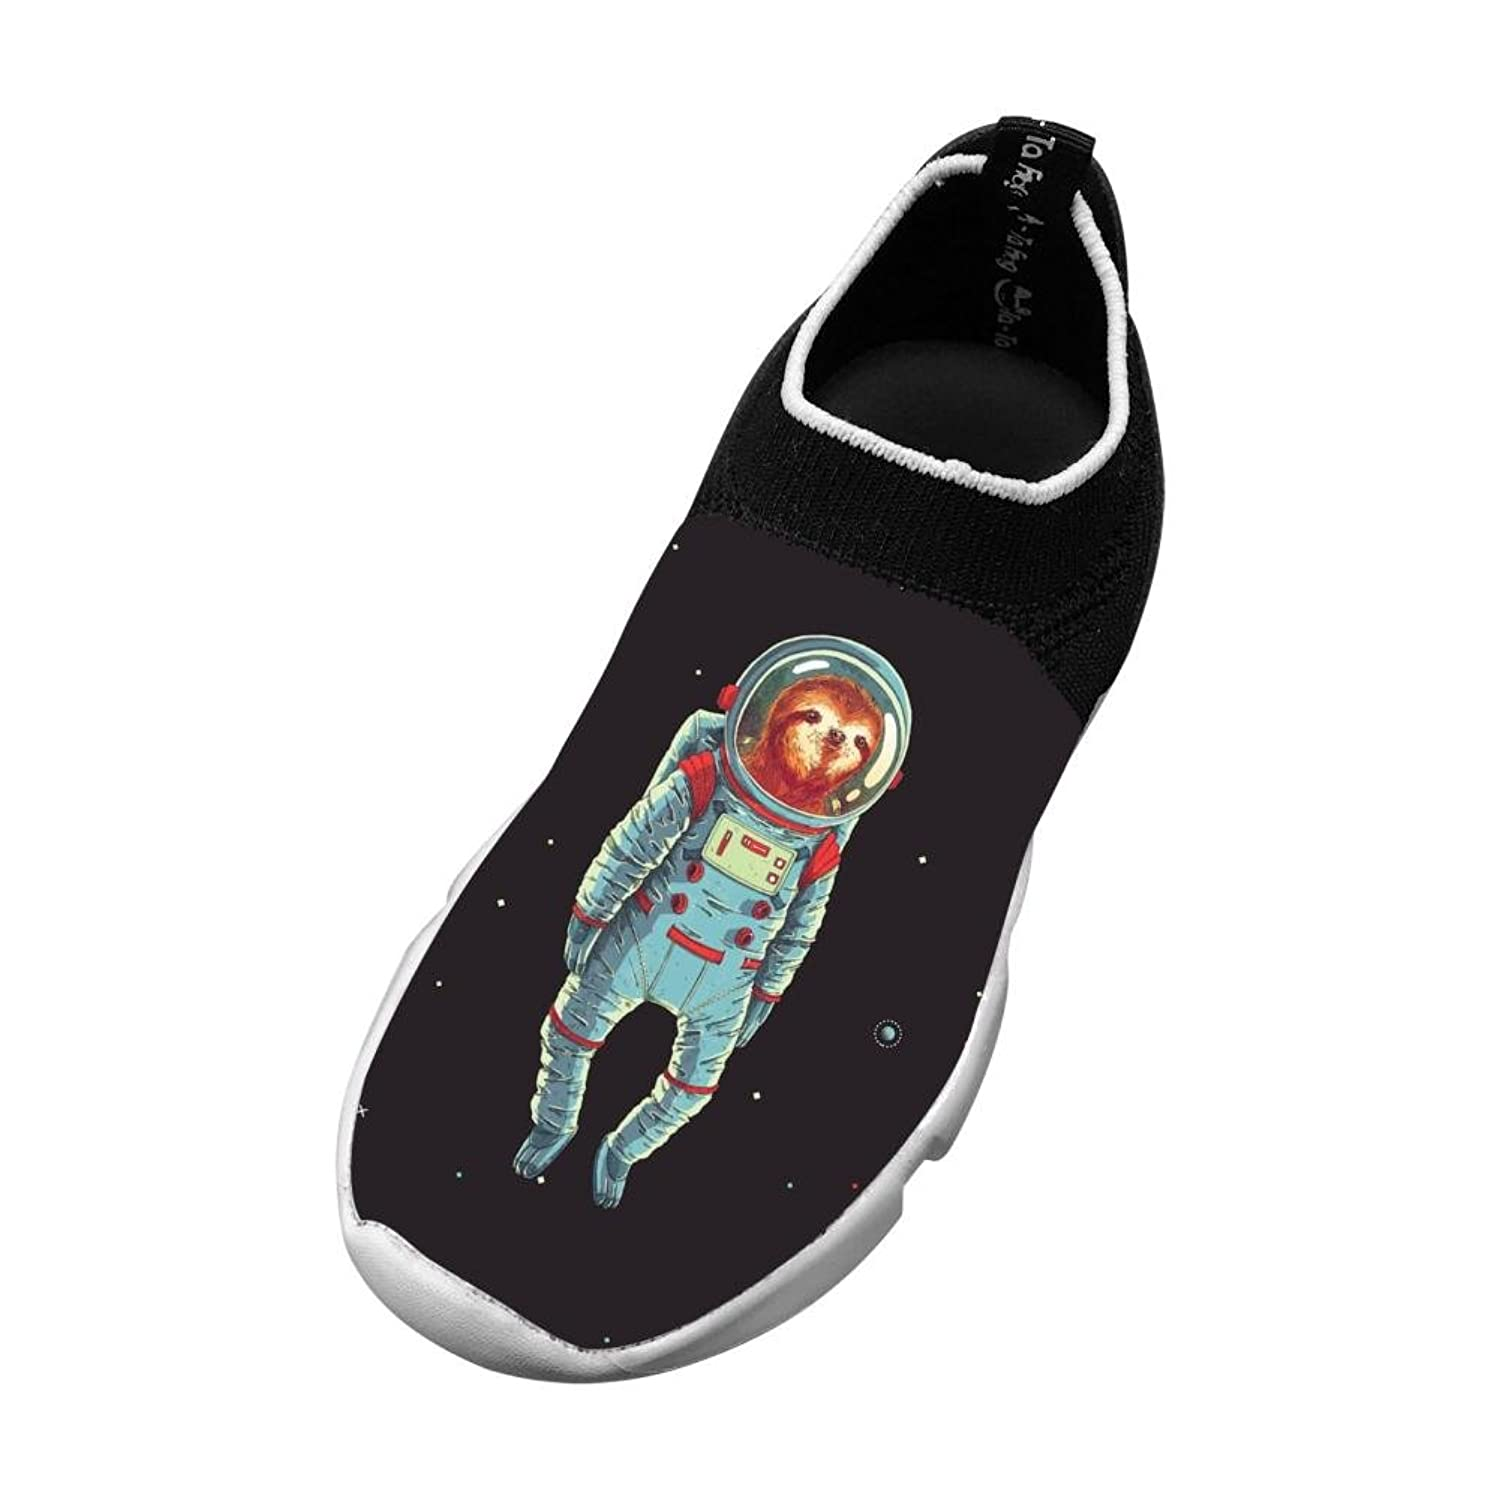 40769867f47e3 Owow Shoe Sports Shoes The Sloth Slip-On Fly Knit Lightweight For ...